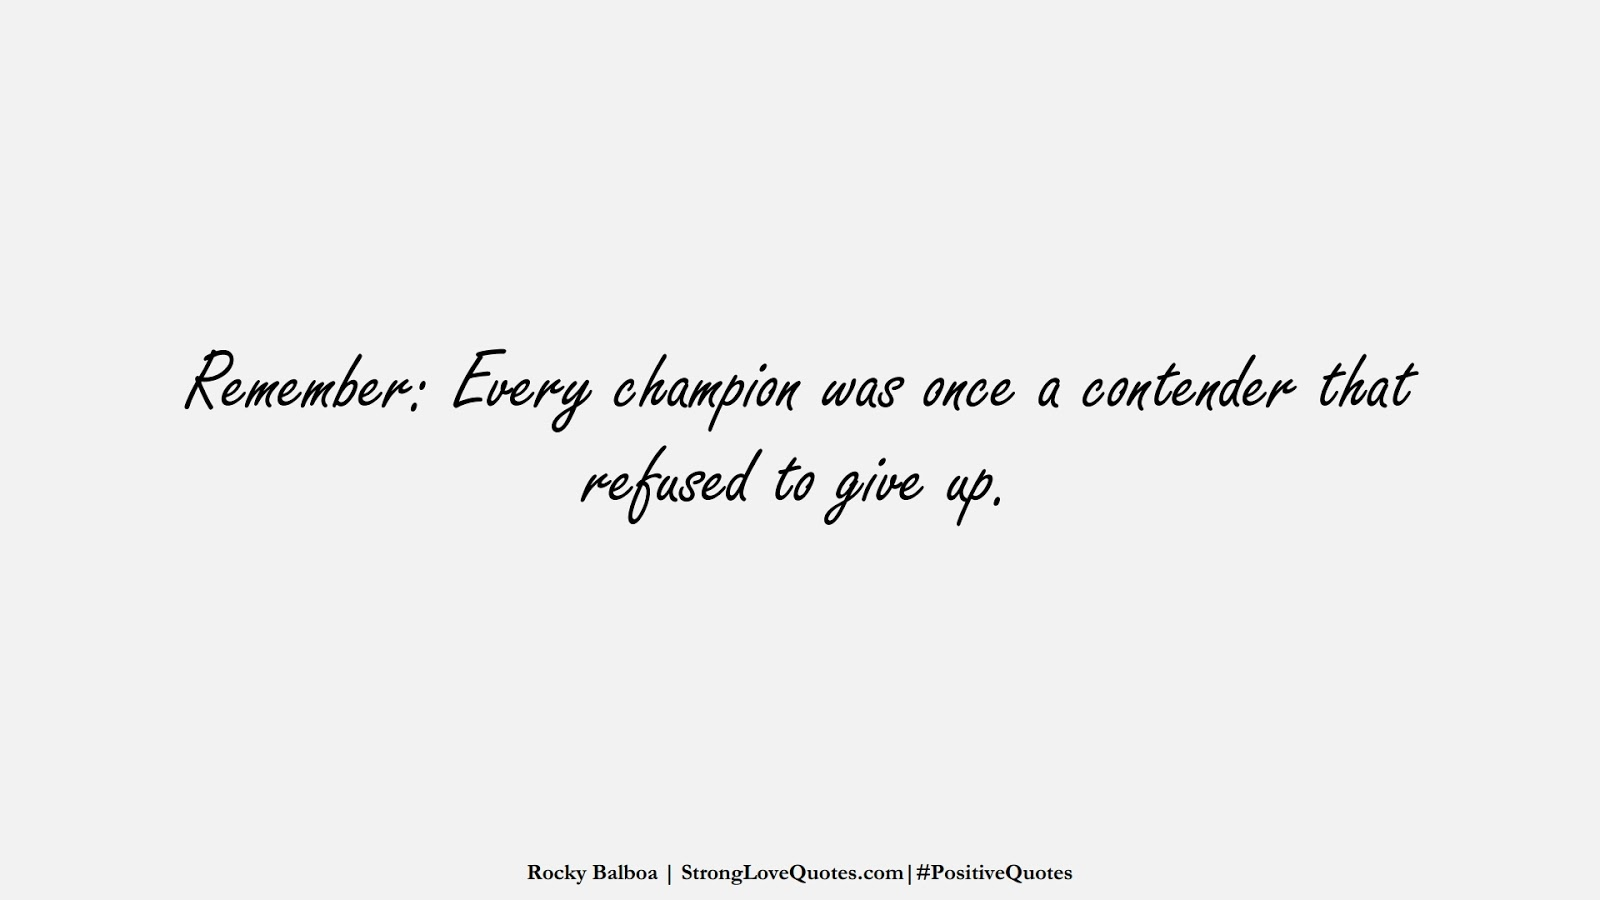 Remember: Every champion was once a contender that refused to give up. (Rocky Balboa);  #PositiveQuotes